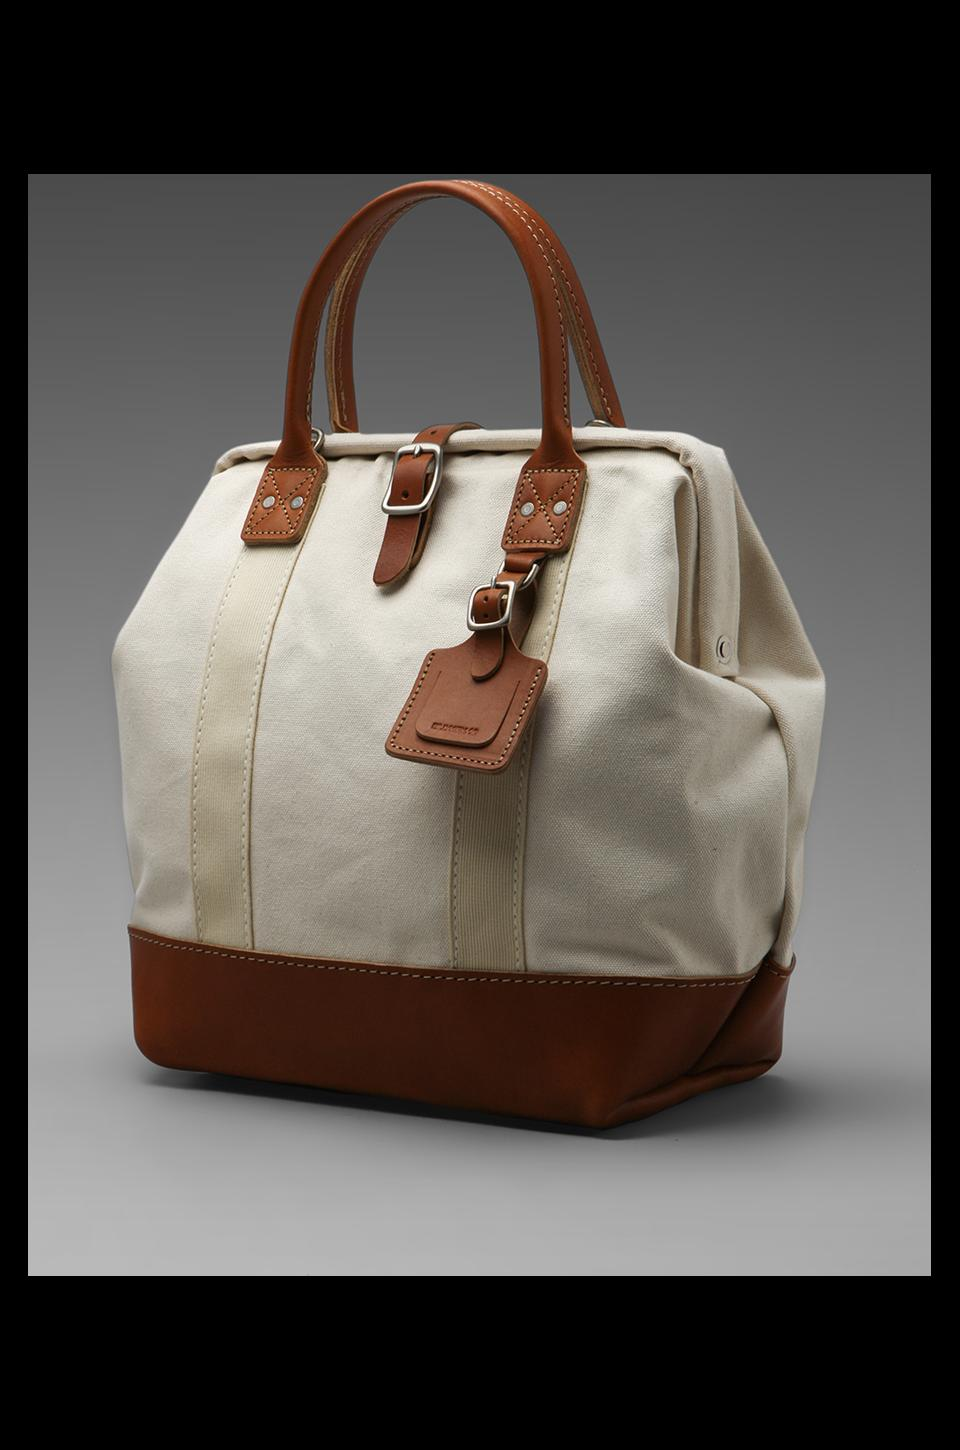 Billykirk No. 164 Small Carryall in Natural With Tan